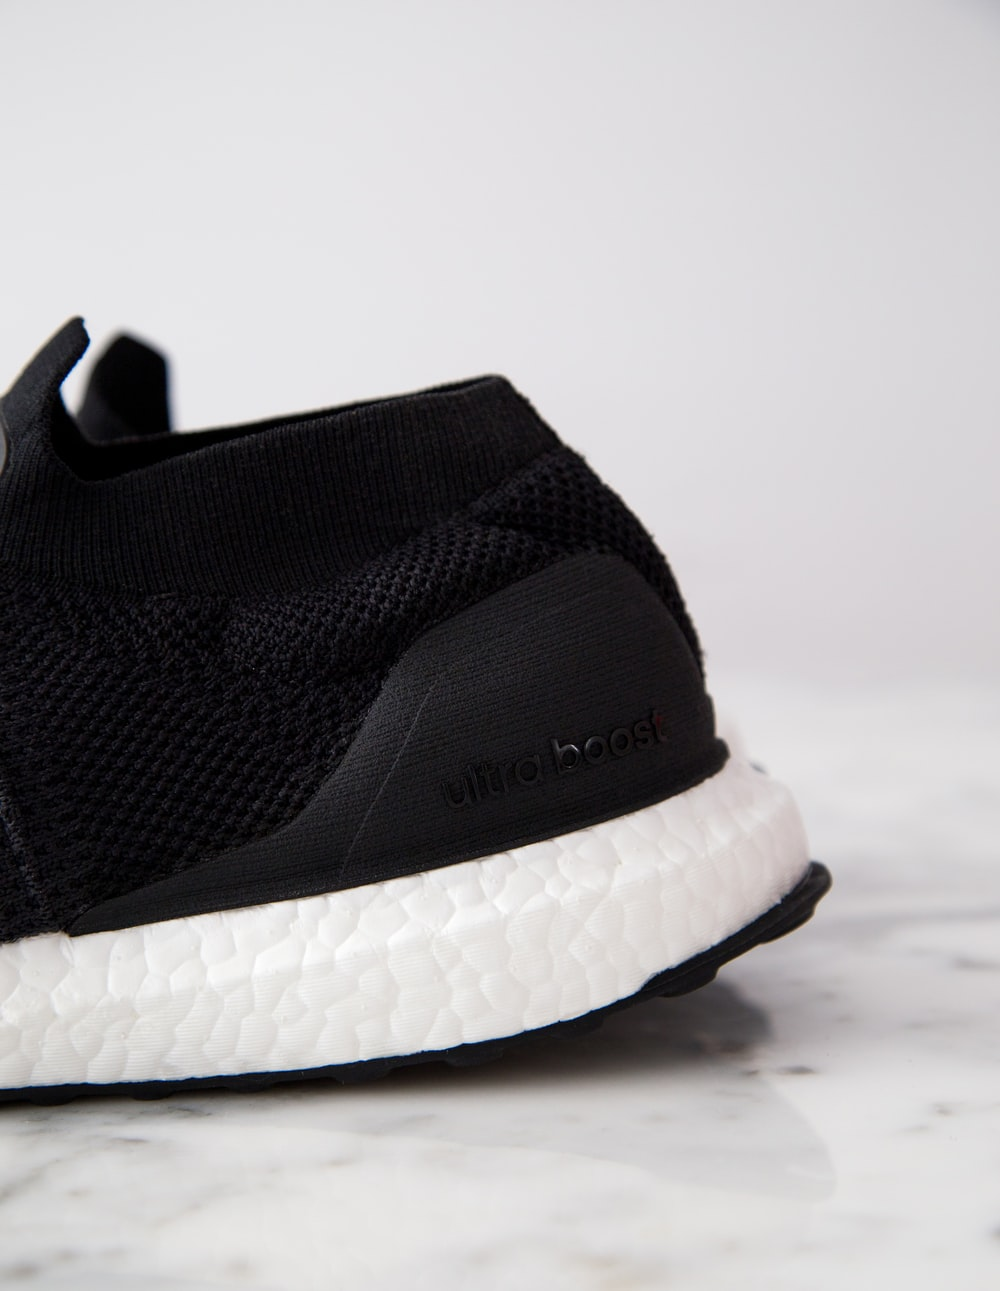 black and white adidas UltraBOOST shoe